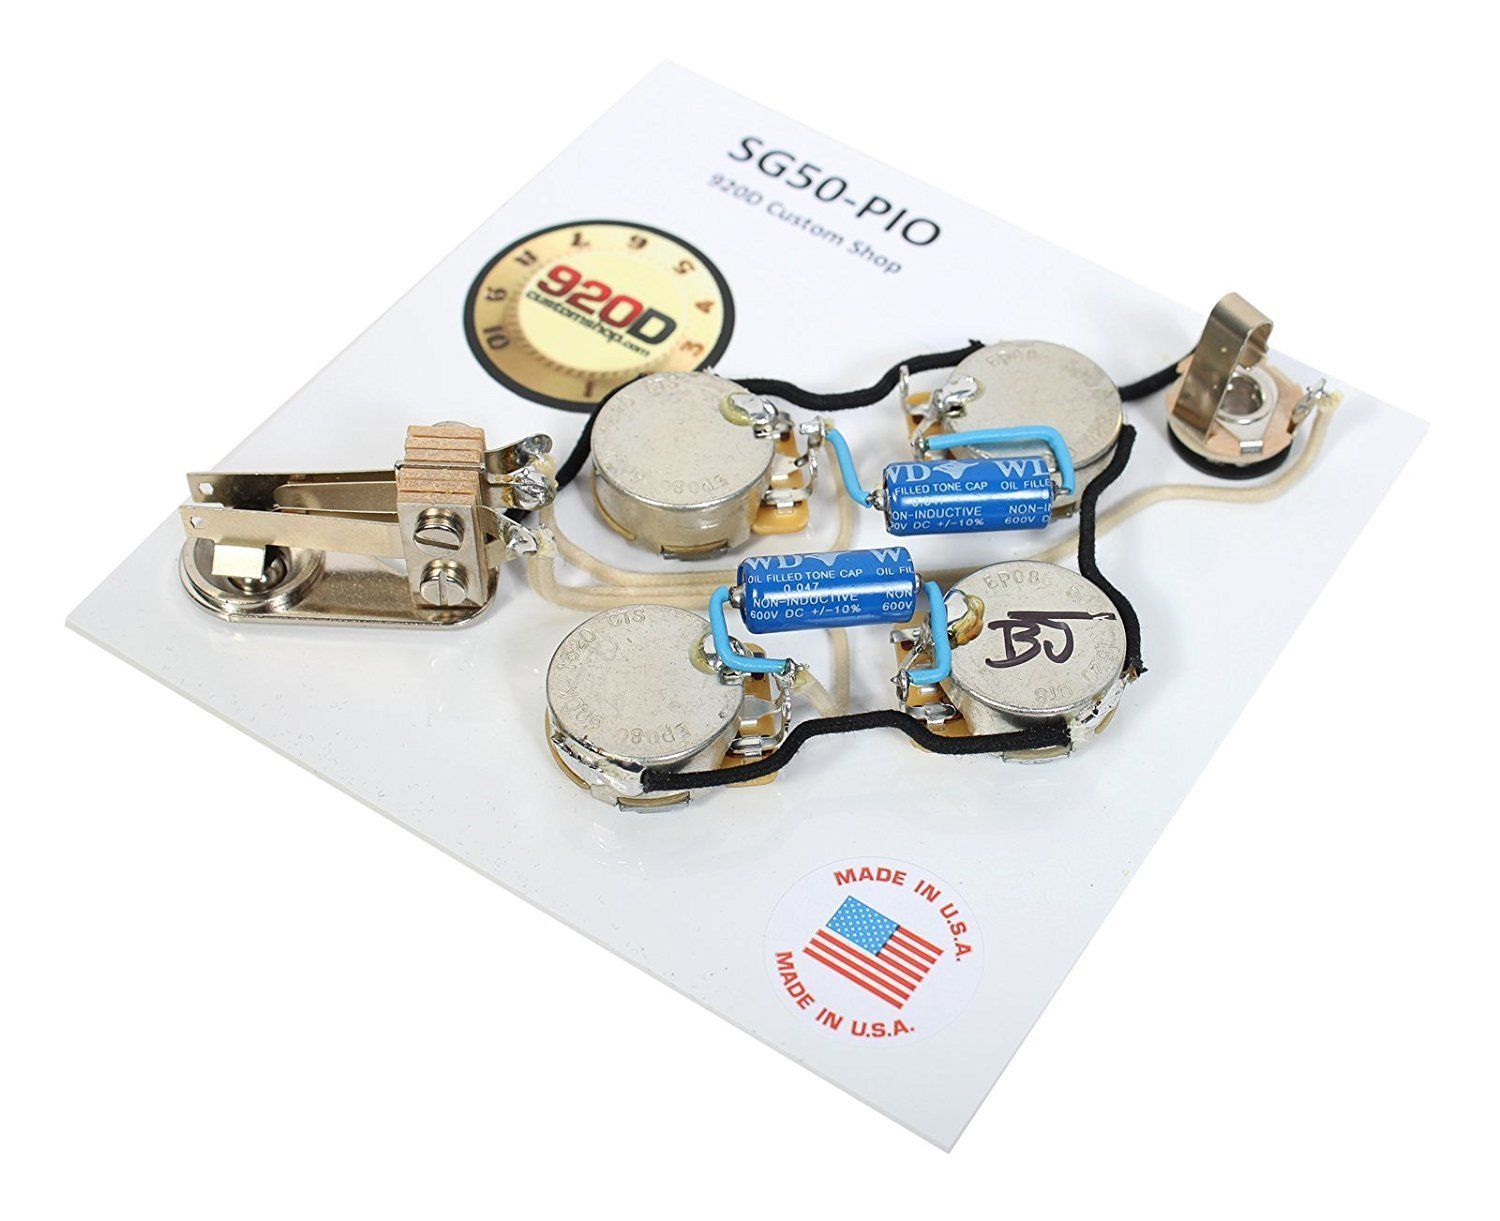 gibson sg epiphone wiring harness cts 500k pots switchcraft pio caps new ebay [ 1500 x 1221 Pixel ]